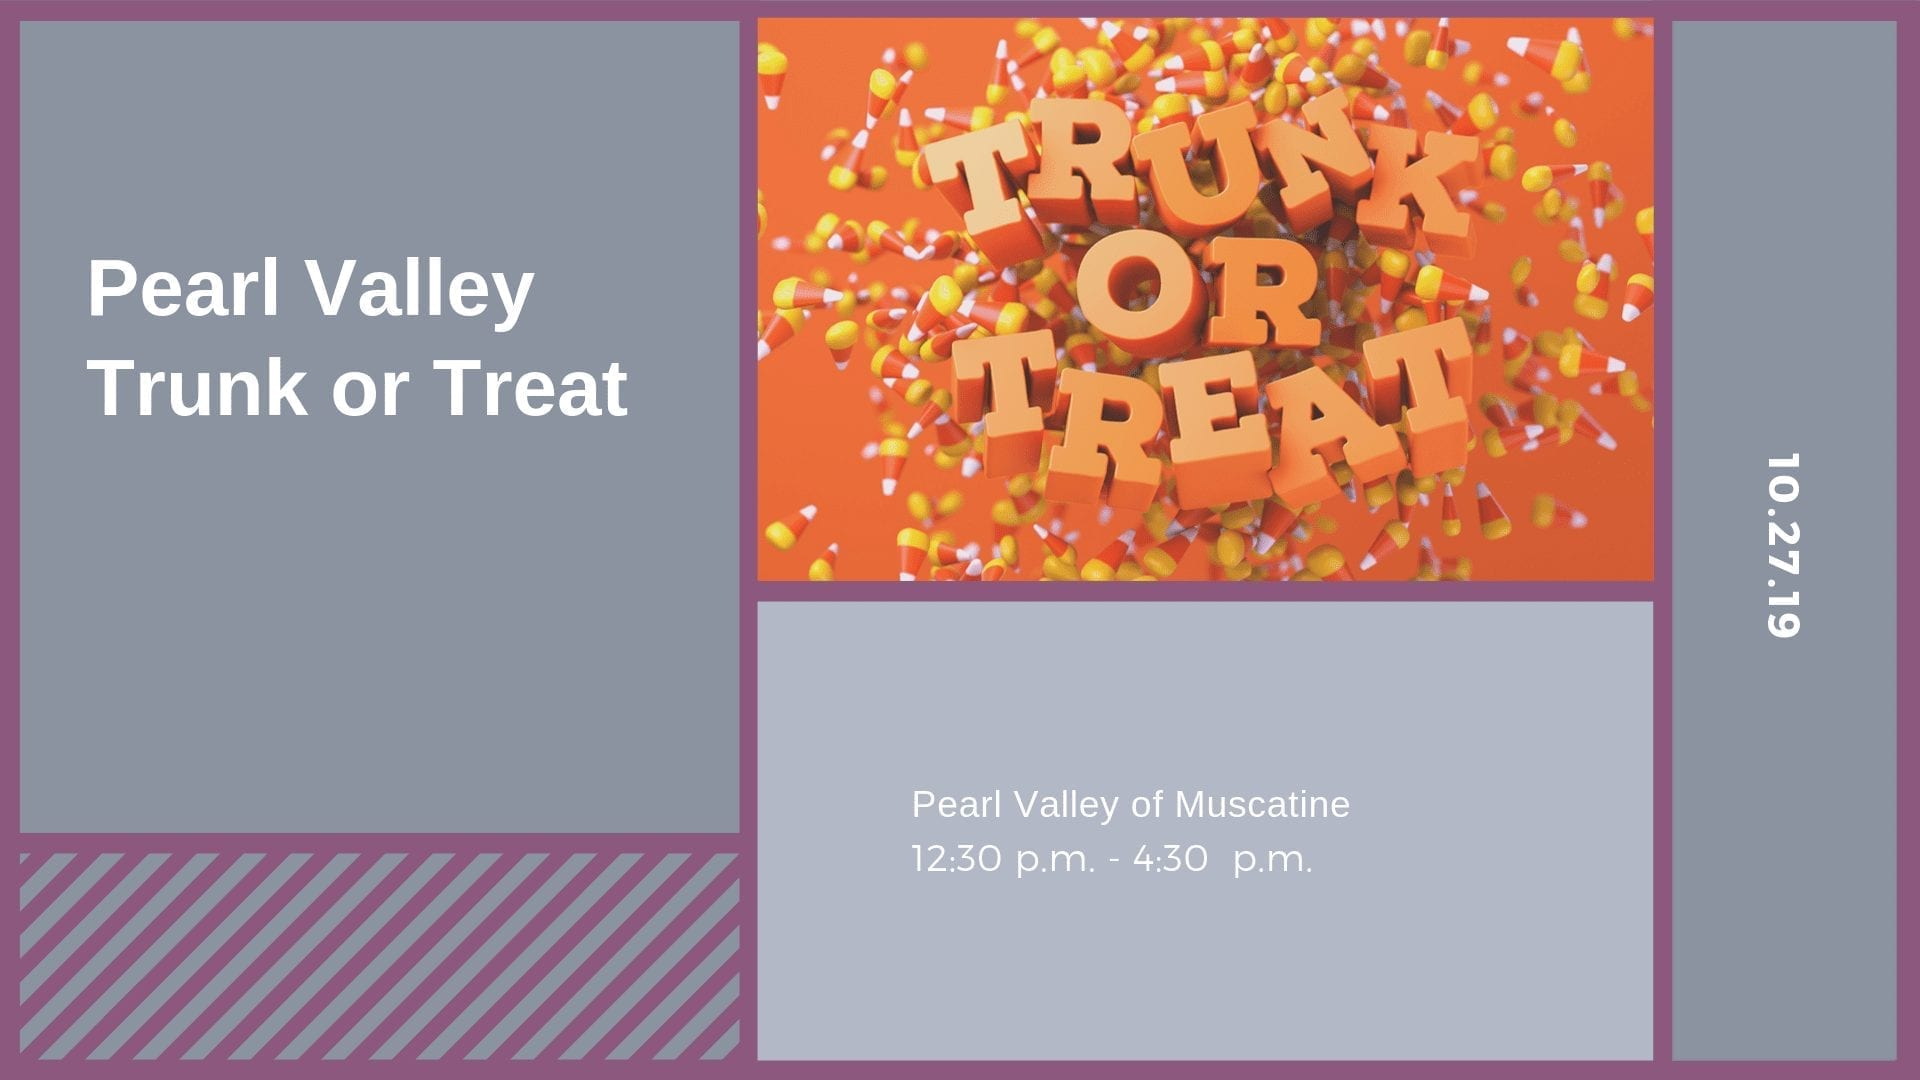 Pearl Valley Trunk or Treat